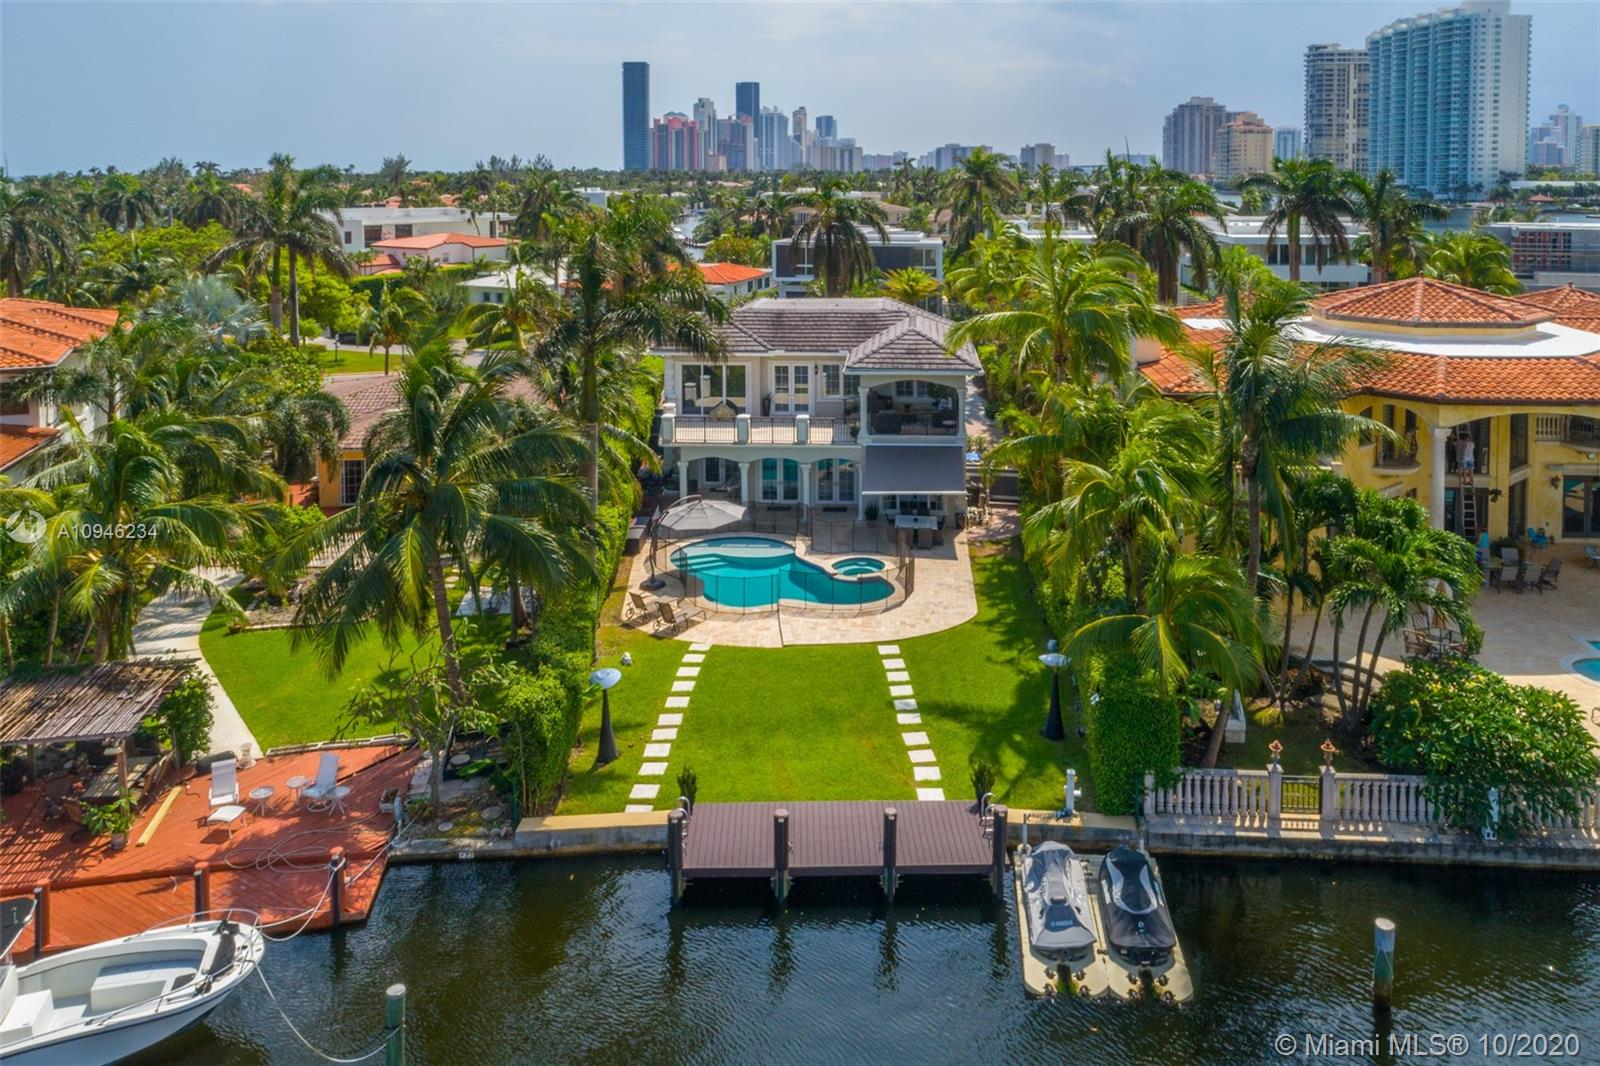 This turnkey Golden Beach chateau is primely located on the beautifully lush North Parkway, offering open water views and a deep backyard perfect for waterfront living. The home has been fully upgraded, boats 5 bedrooms, 5 bathrooms, 4,356 sq ft and the perfect balance of modern touches and warm finishes.